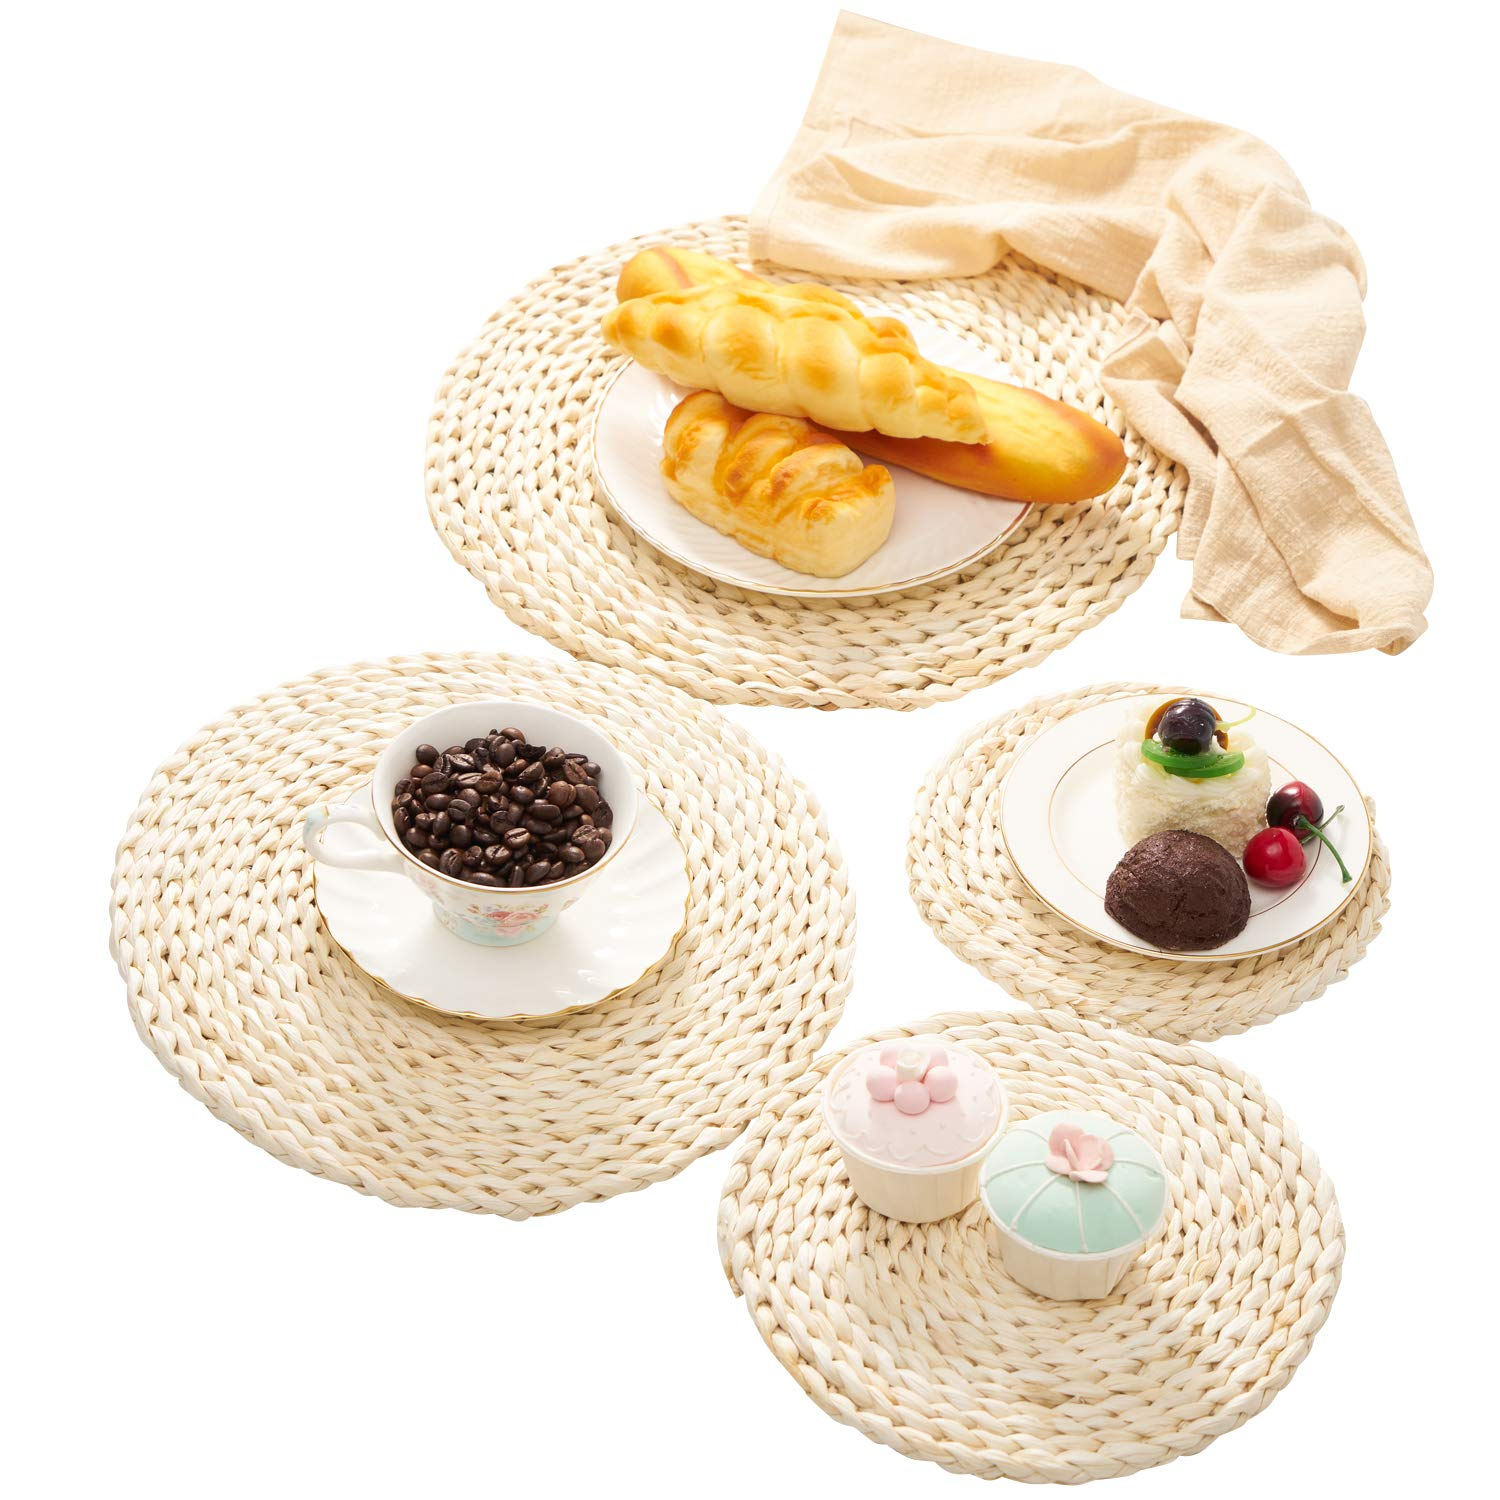 Corn Straw Braided Dining Table Mats 4pcs Round Woven Placemats Natural Handmade Extra Thick Coasters Mat For Cup Pot Heat Resistant Hot Insulation Reusable Anti Skidding Pad Assorted Size Buy Online In Bermuda